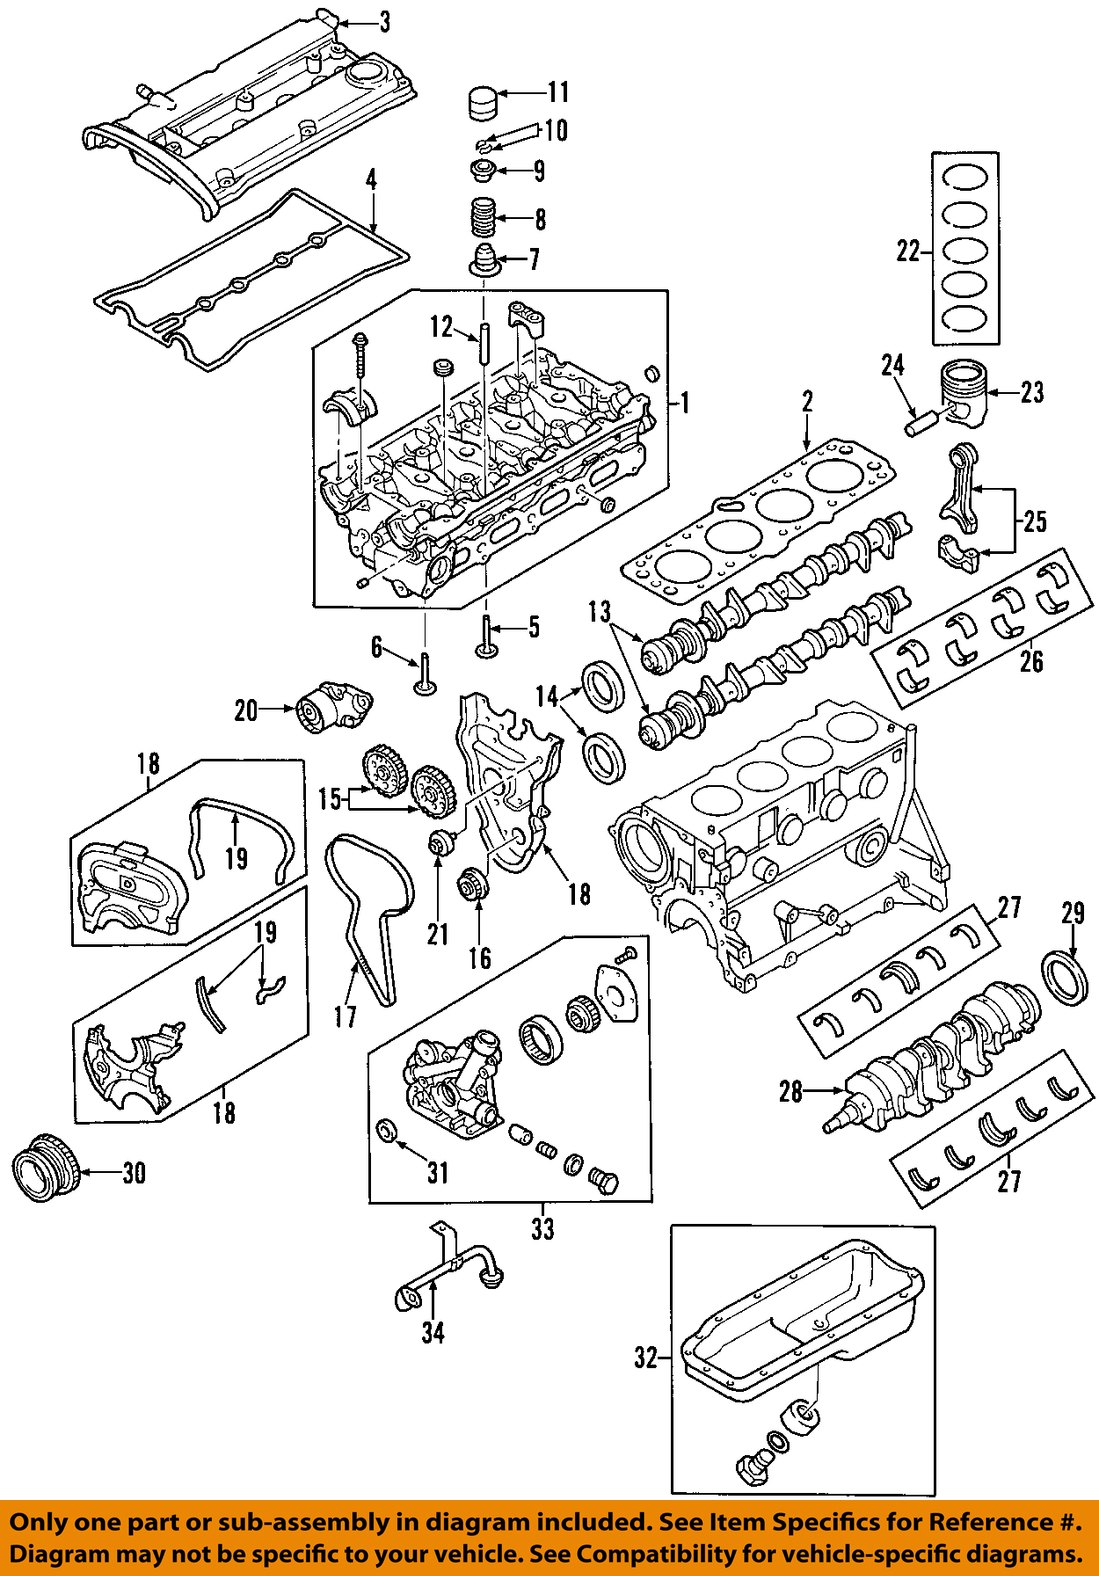 hight resolution of 2011 chevy aveo5 engine diagram wiring diagram img diagram 2009 chevy aveo engine chevy silverado engine diagram chevy